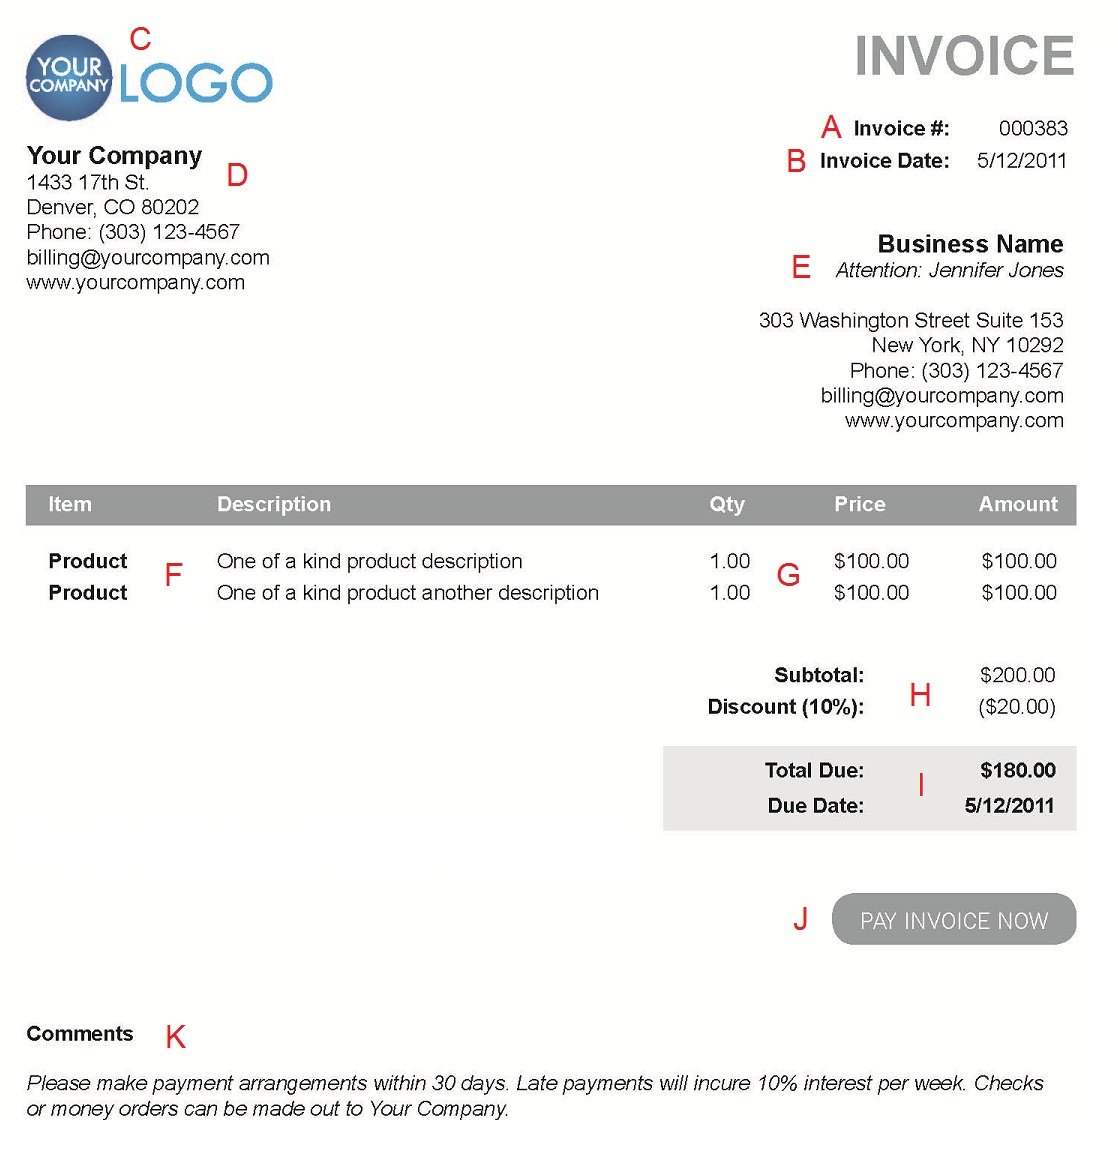 Coolmathgamesus  Winning The  Different Sections Of An Electronic Payment Invoice With Luxury A  With Beauteous Vehicle Sale Receipt Template Also App For Saving Receipts In Addition Receipt Of This Letter And Gumbo Receipt As Well As Receipts App For Iphone Additionally Child Care Tax Receipt Template From Paysimplecom With Coolmathgamesus  Luxury The  Different Sections Of An Electronic Payment Invoice With Beauteous A  And Winning Vehicle Sale Receipt Template Also App For Saving Receipts In Addition Receipt Of This Letter From Paysimplecom